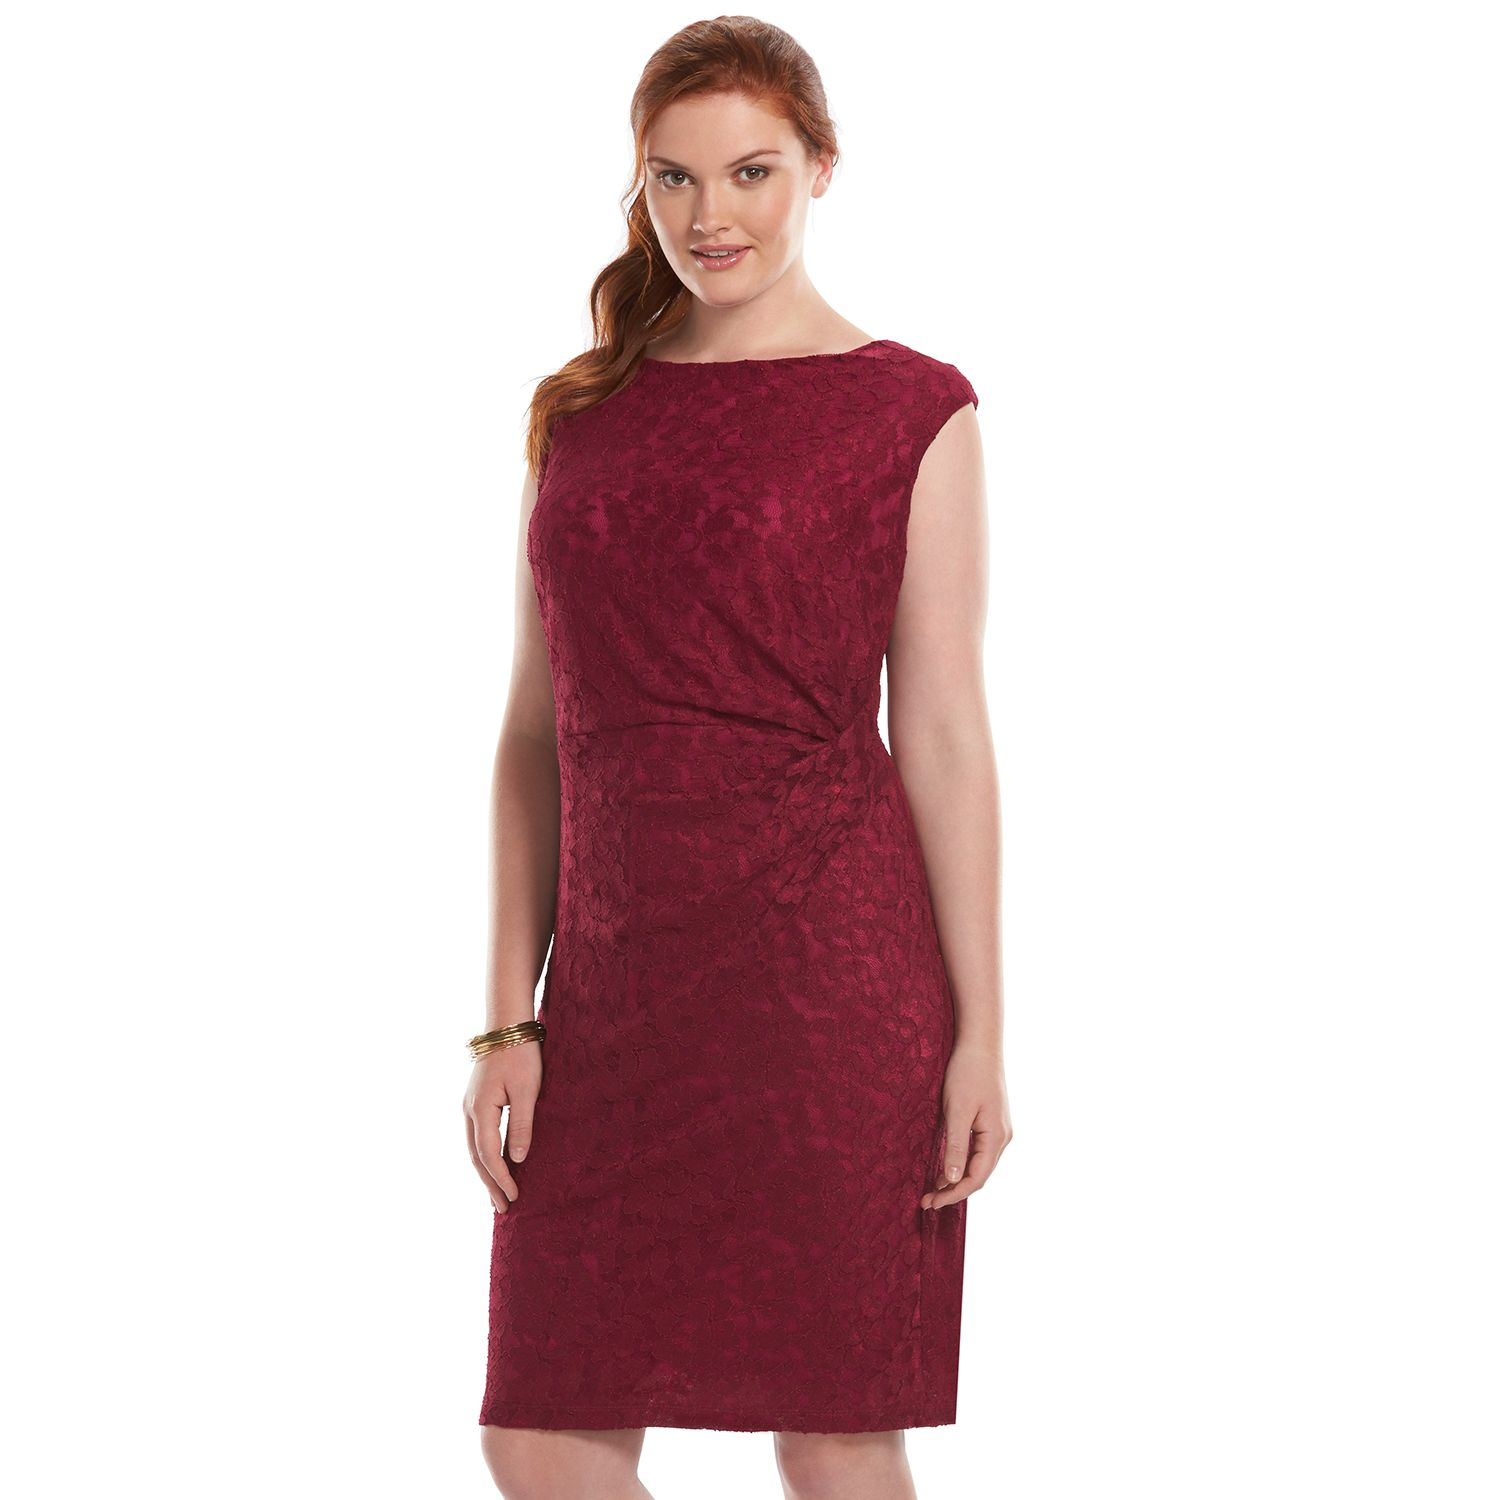 Red lace dress size 16